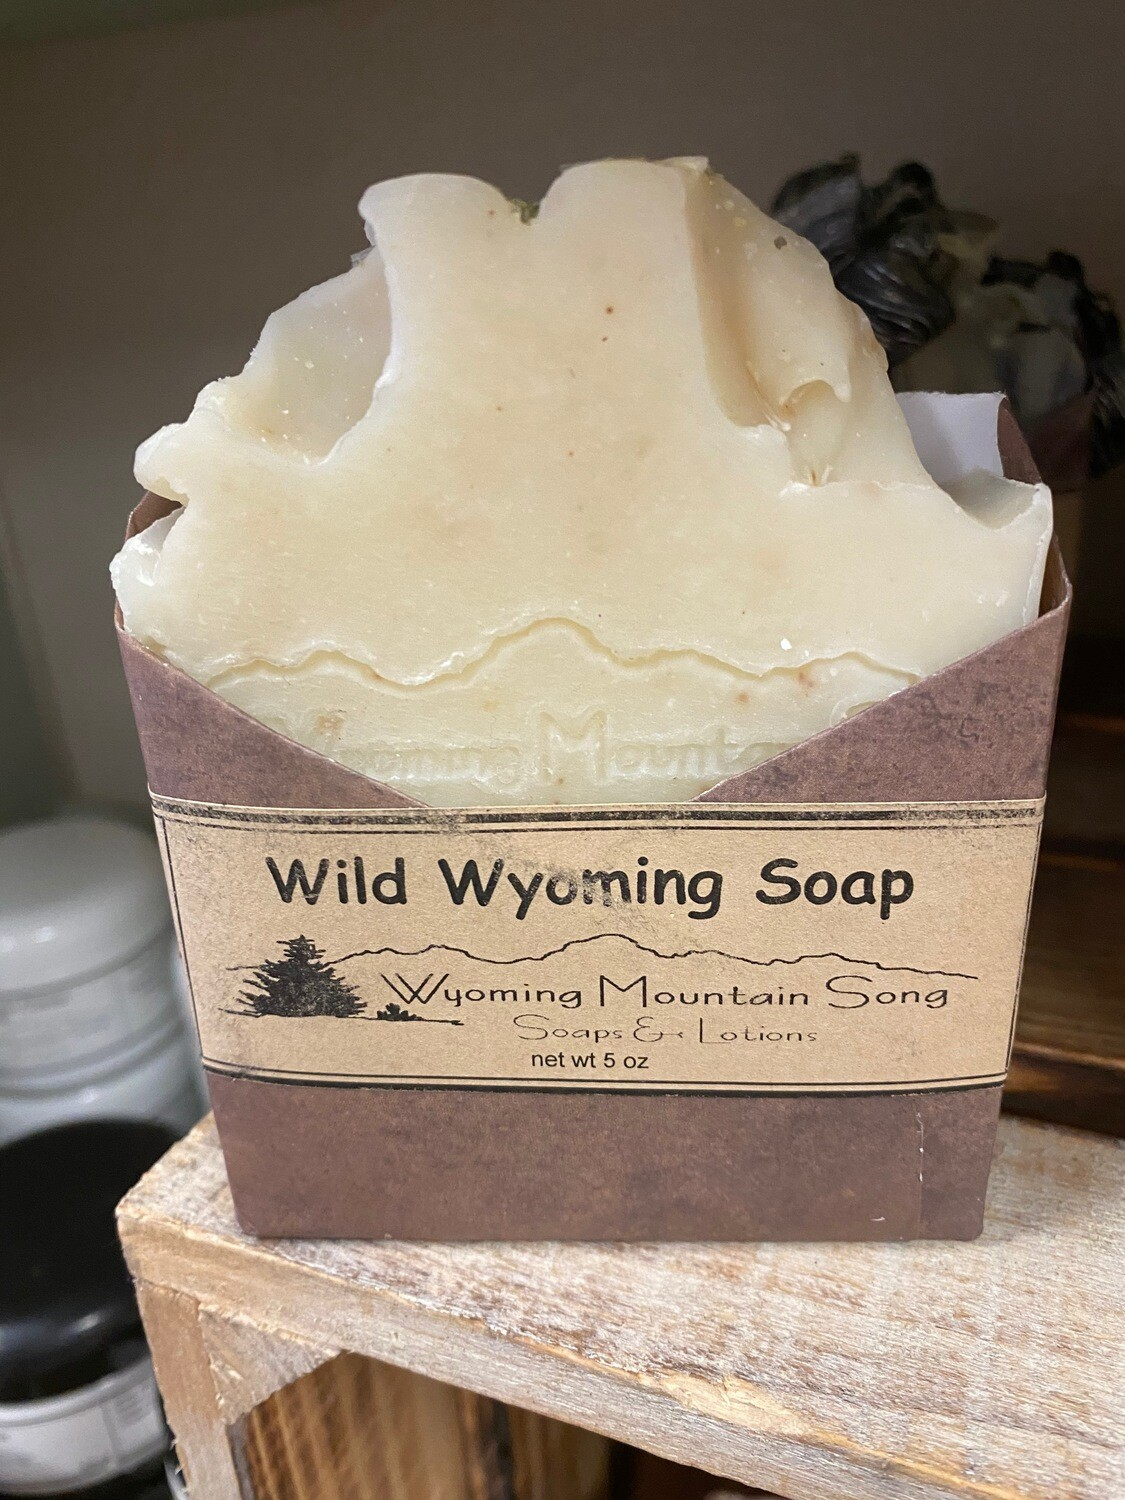 Wyoming Mountain Song soap/Wild Wyoming